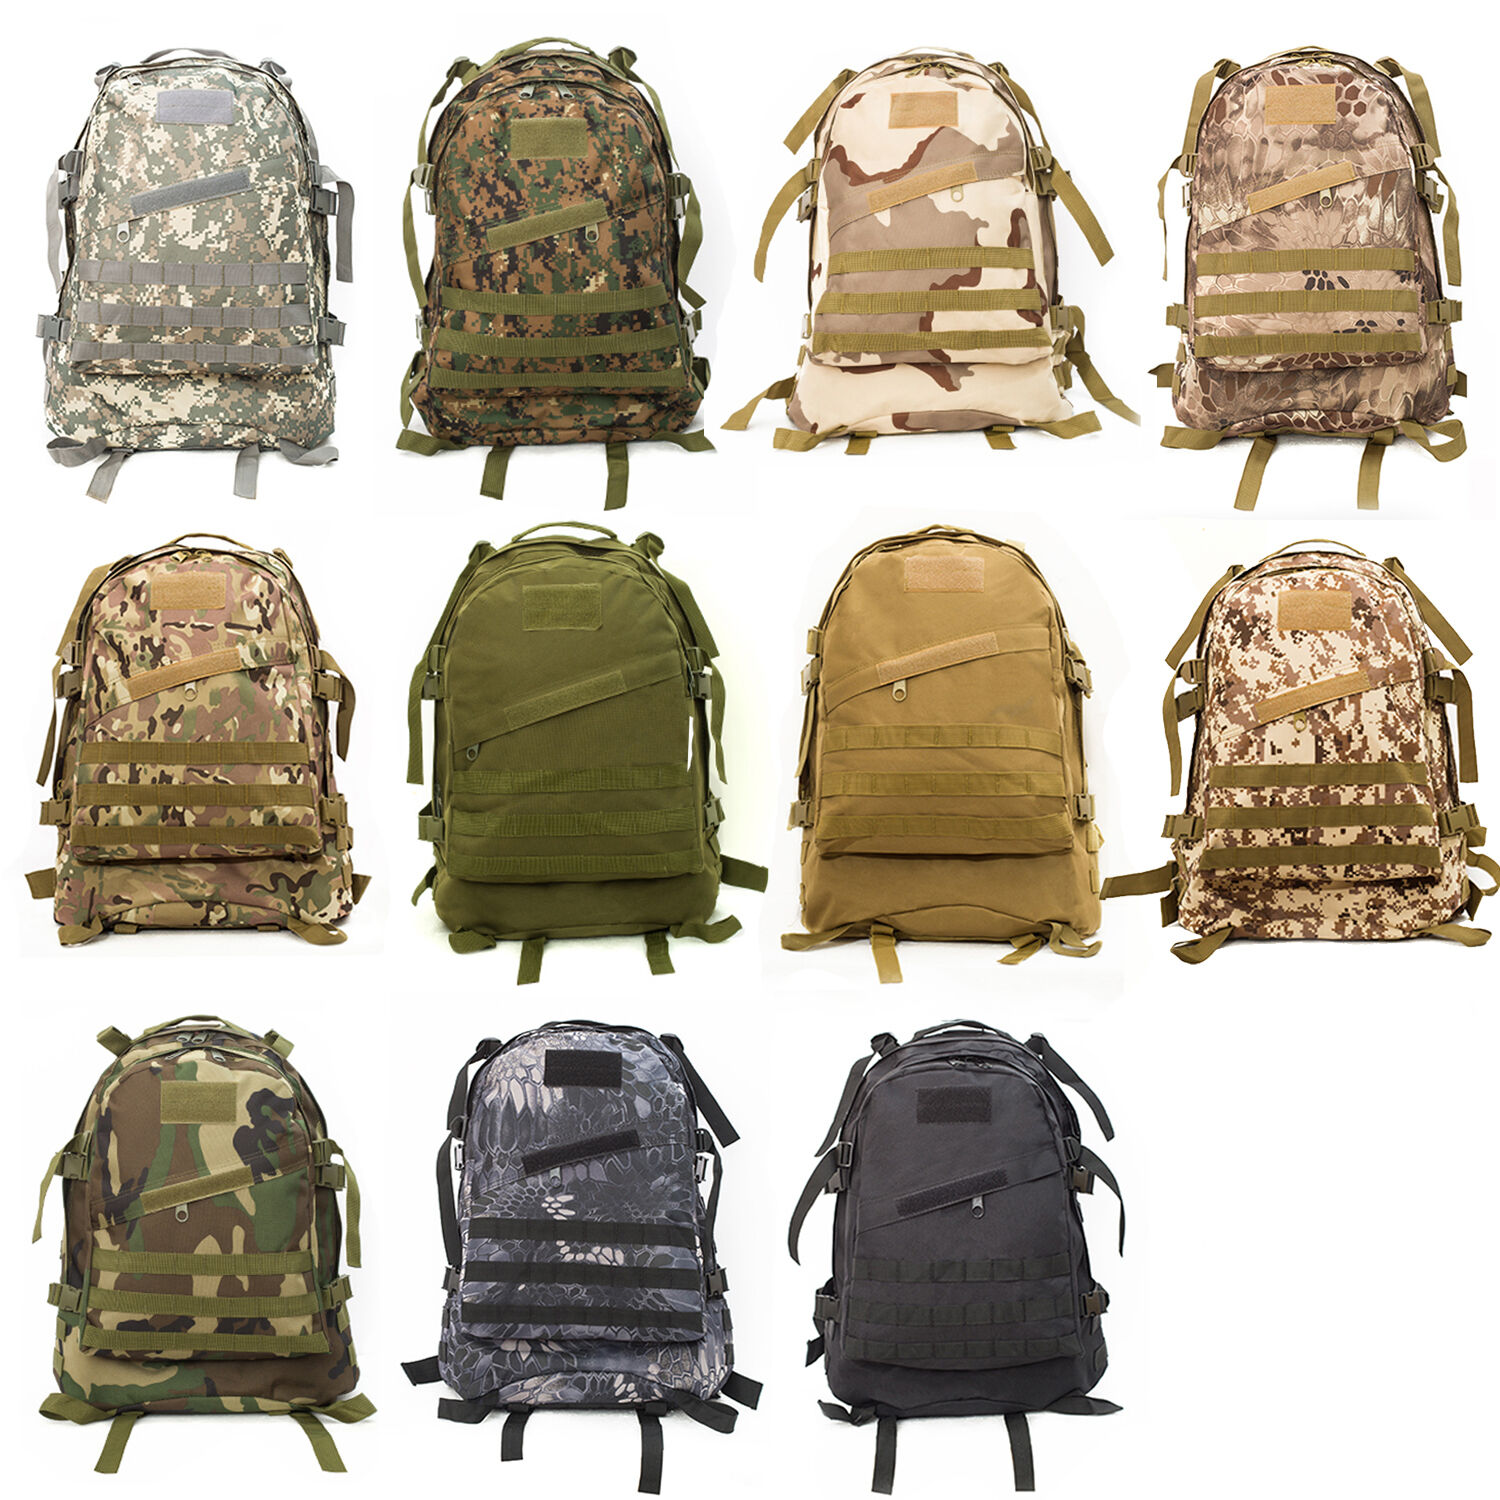 1b33e95dd9 40L 3D Molle Backpack Outdoor Tactical Military Rucksack Bag Hiking Camping  Bag 2 2 of 9 ...